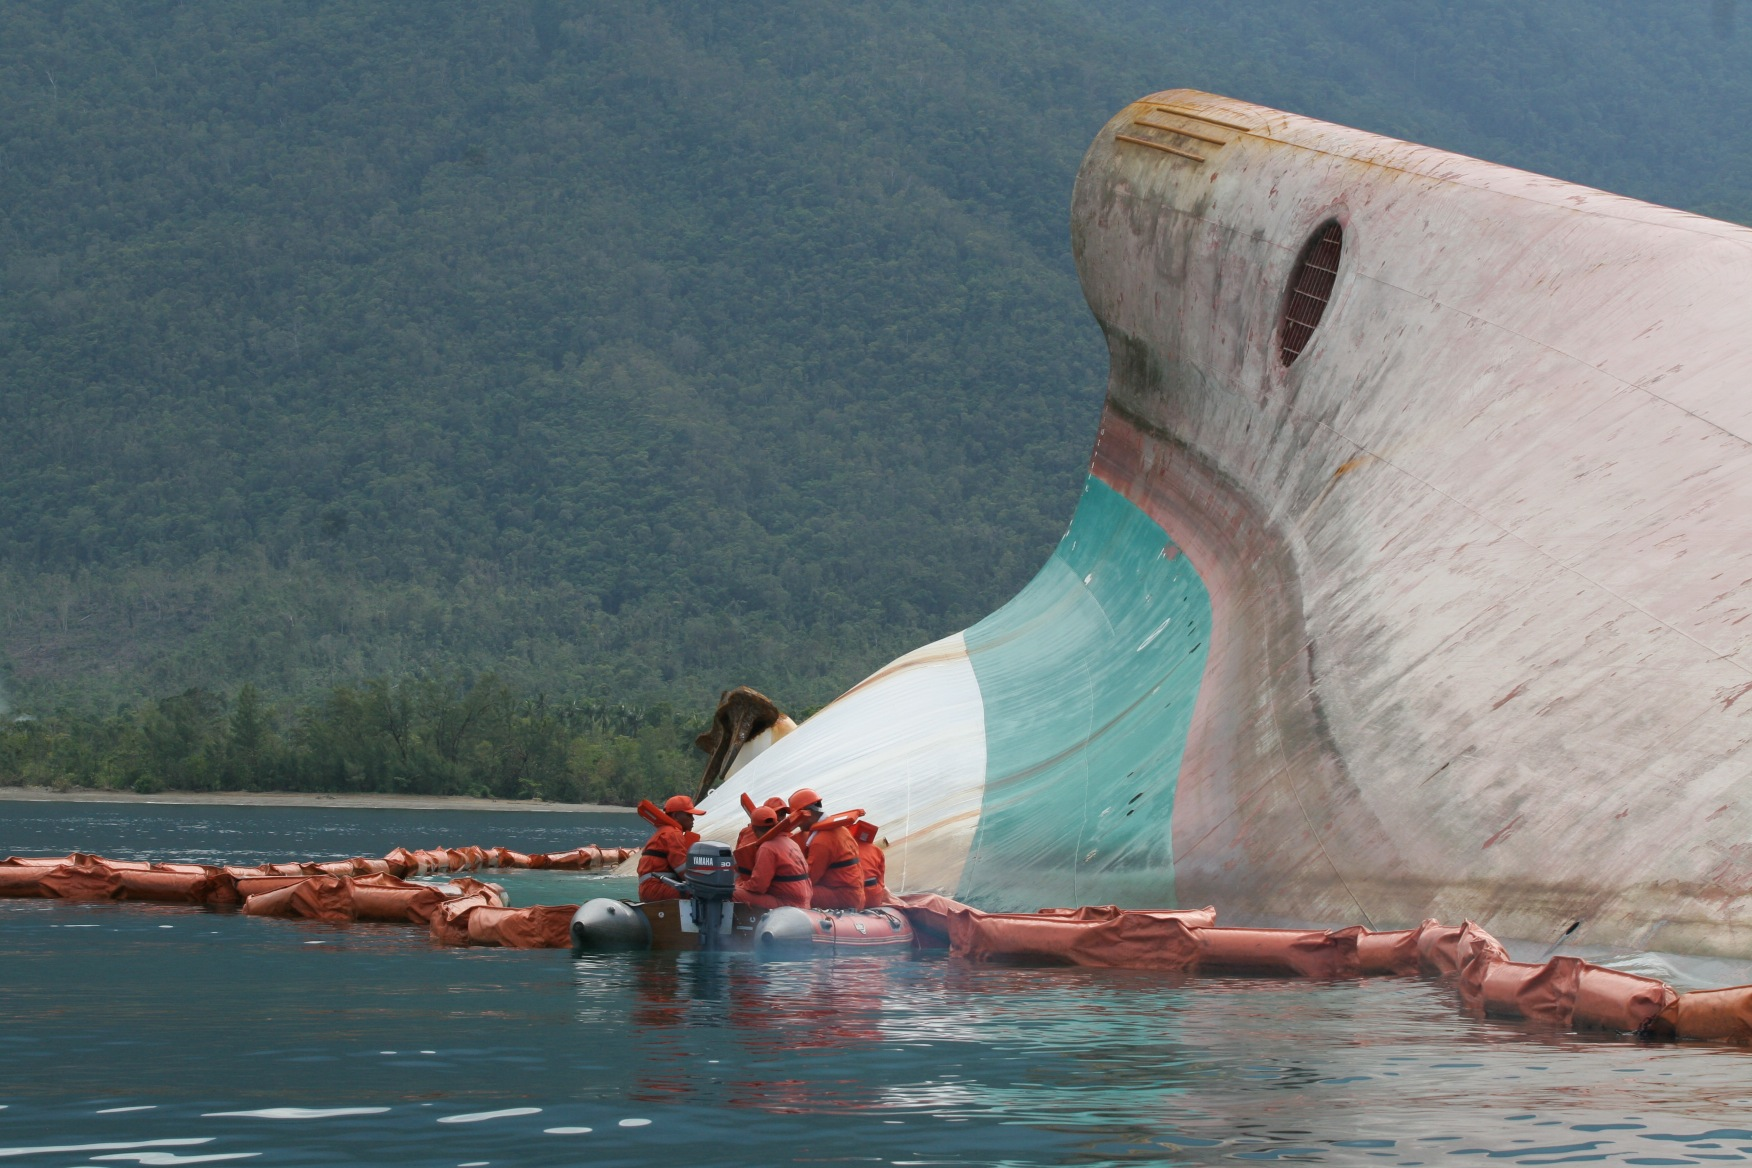 The Philippines' ferry Princess of the Stars ferry sank on 21 June 2008 and killed 437 passengers